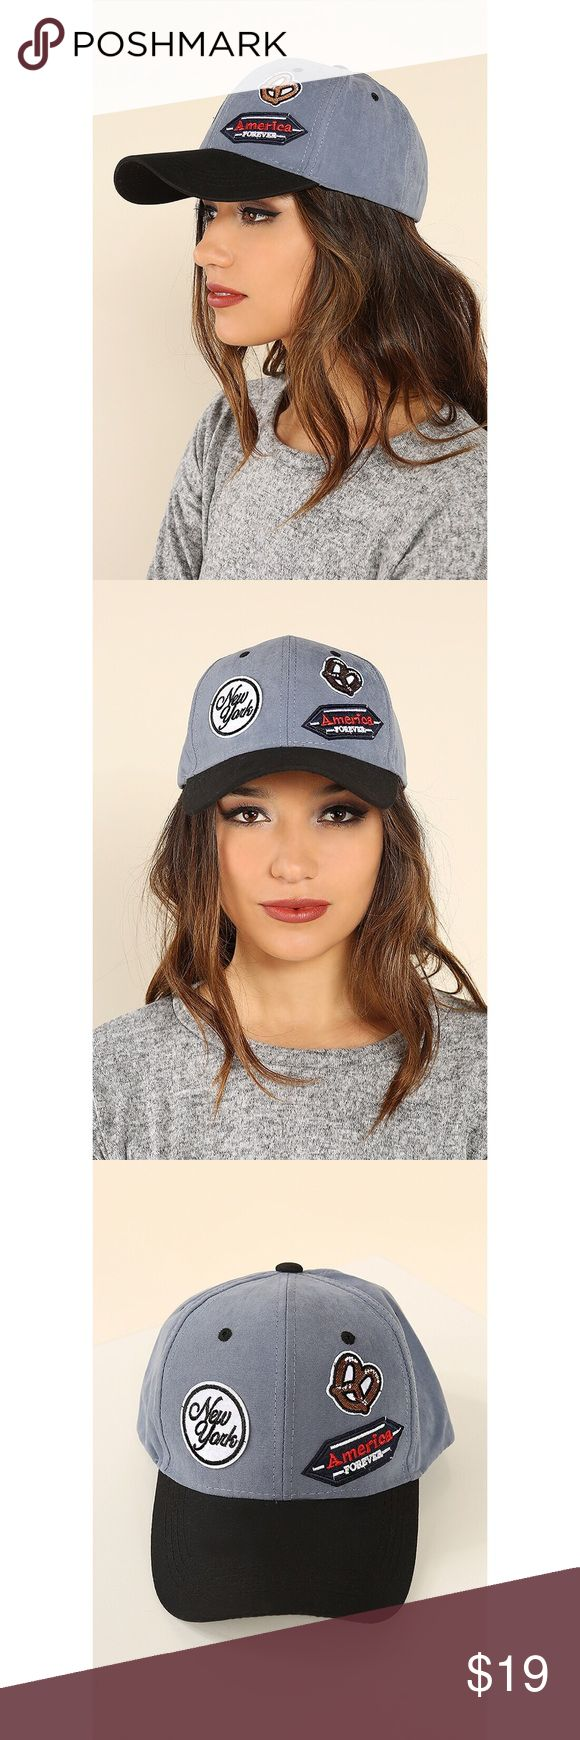 """Patch Cap w/American Style in Blue and Black - New Ultra cute cap by the brand Monkey Tail! This cap features a soft grey-blue base, black front end visor, and black velcro adjustable strap in the back. The cap features patchwork that reads """"New York"""", """"America Forever"""" and a classic NY pretzel. Wild Eclectic Accessories Hats"""